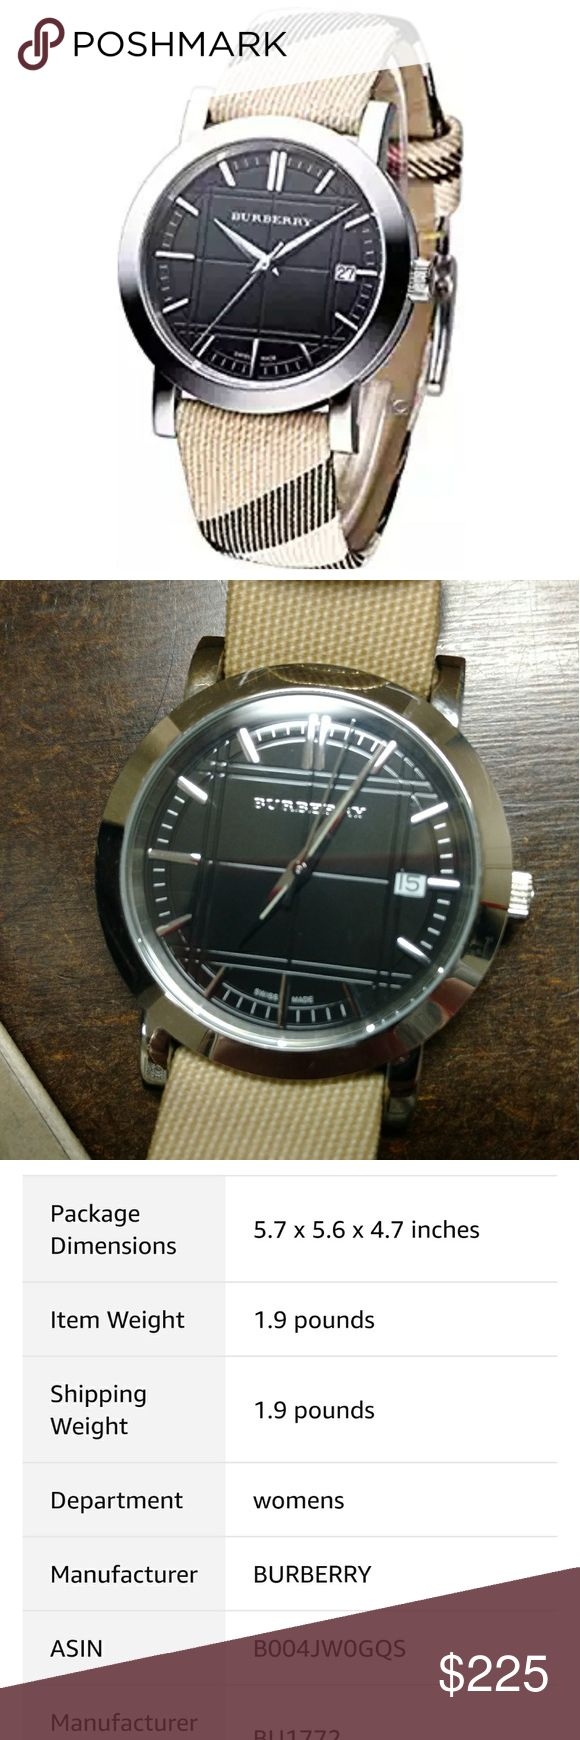 Burberry Classic Nova Check Strap w Black Face Gorgeous Burberry watch. Purchased in London, works perfectly and has the original box, booklets, etc. There are slider marks from wear on case, both front and back, no marks on the crystal. The original band is in great shape, no discoloration from wear. Can see about having a jeweler buff case prior to shipping if requested. Burberry Accessories Watches